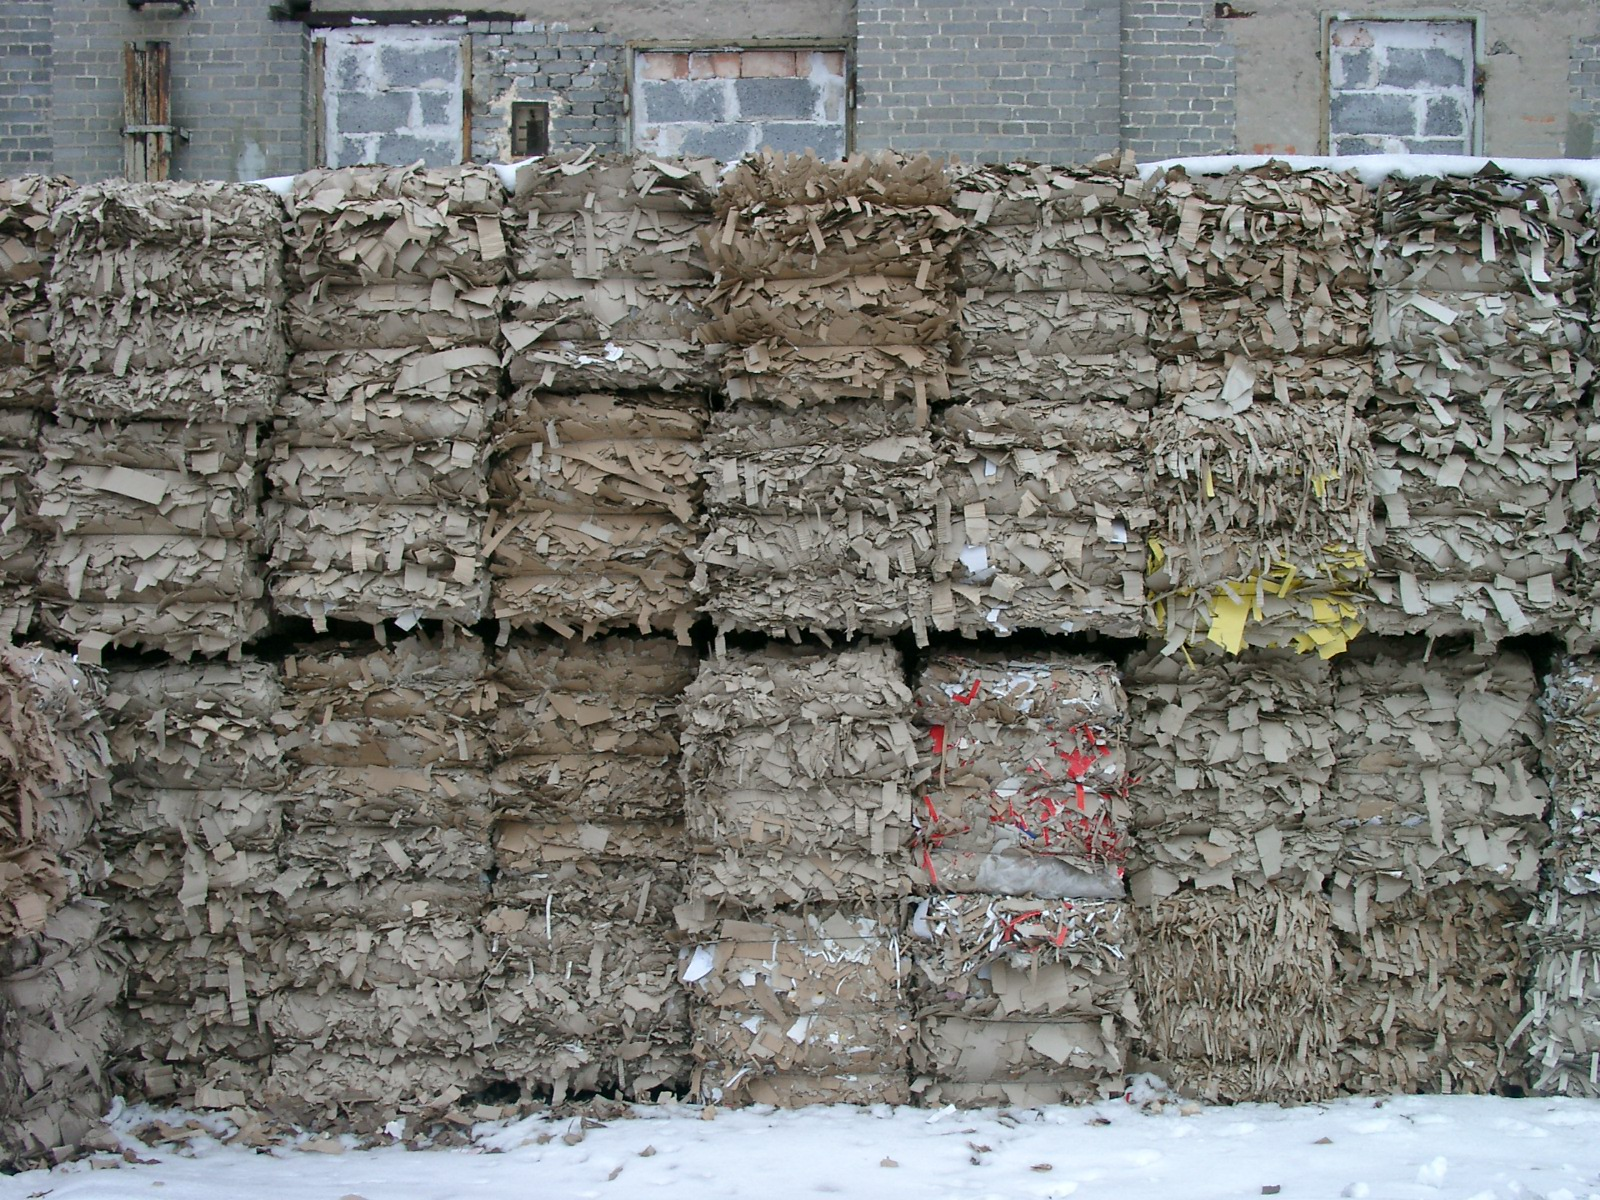 Paper being prepared for recycling at a facility in Poland.